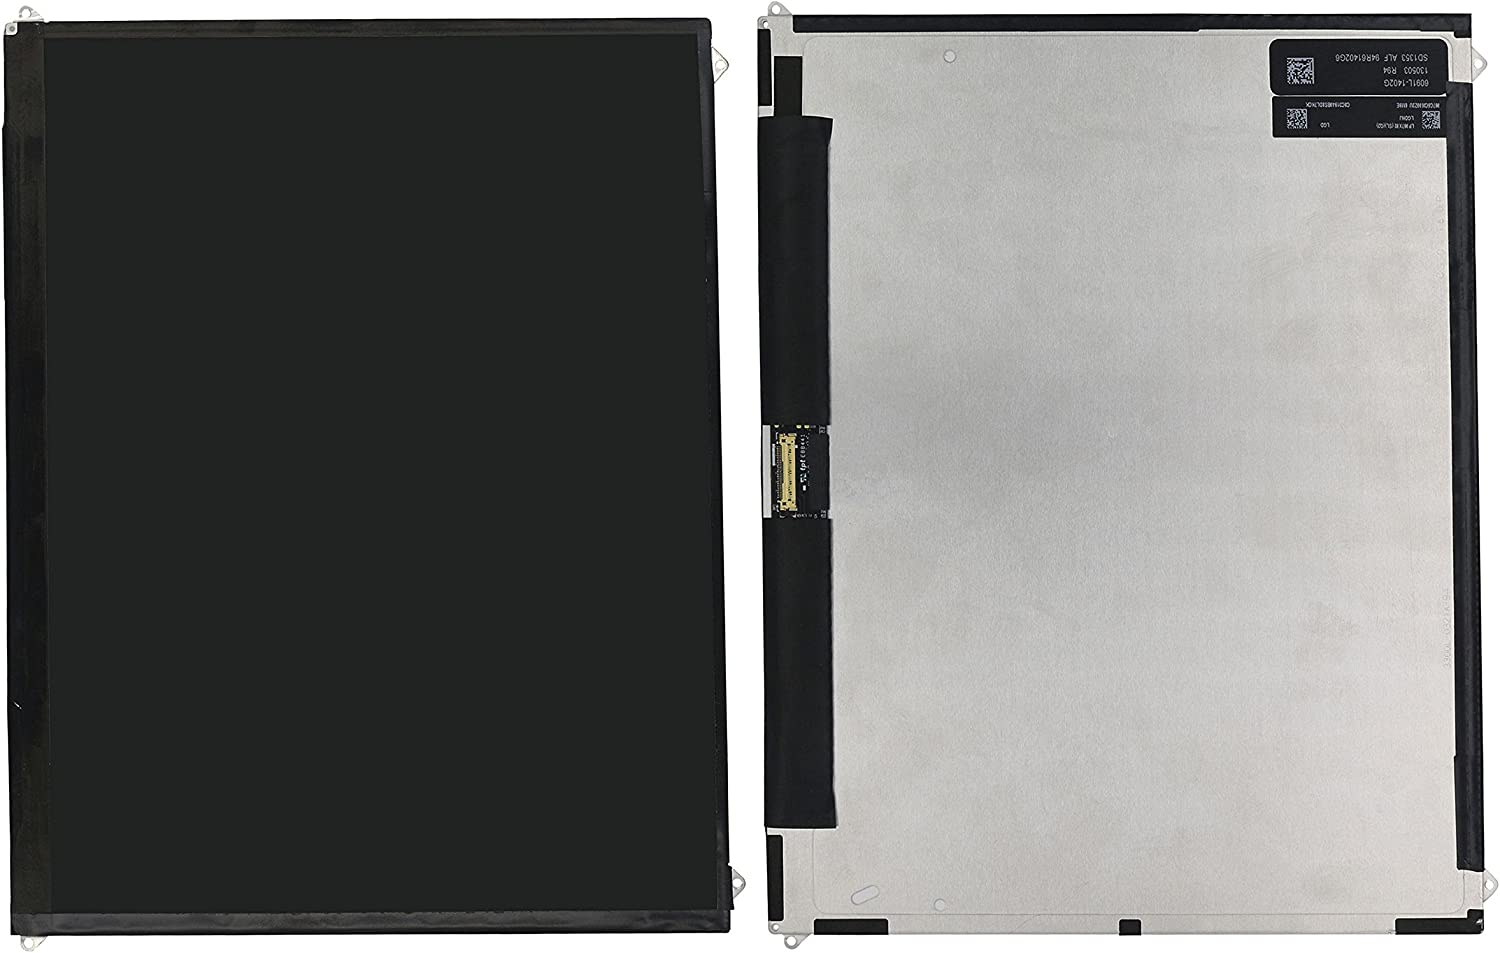 LCD Screen Display Replacement For iPad 2 A1395 A1396 A1397 US STOCK